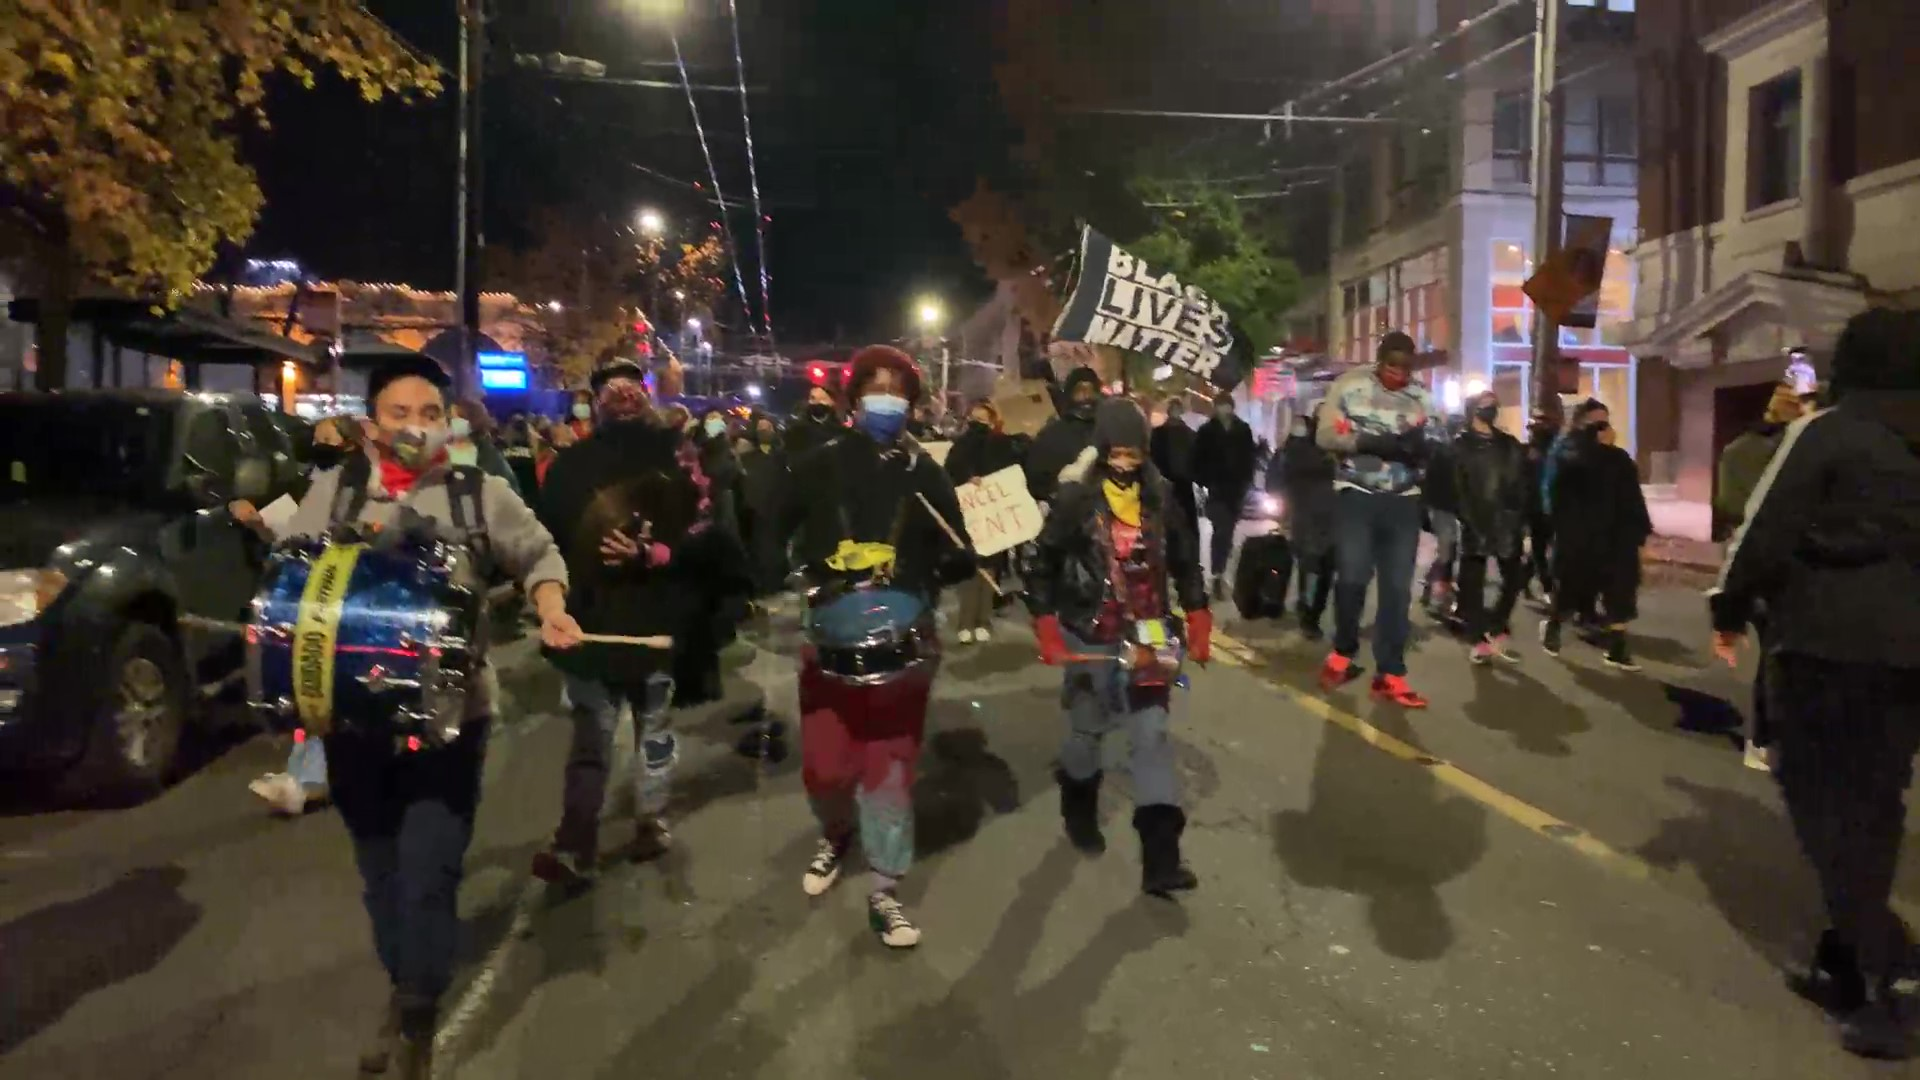 BLM Protesters in Seattle March to Cancel Rent